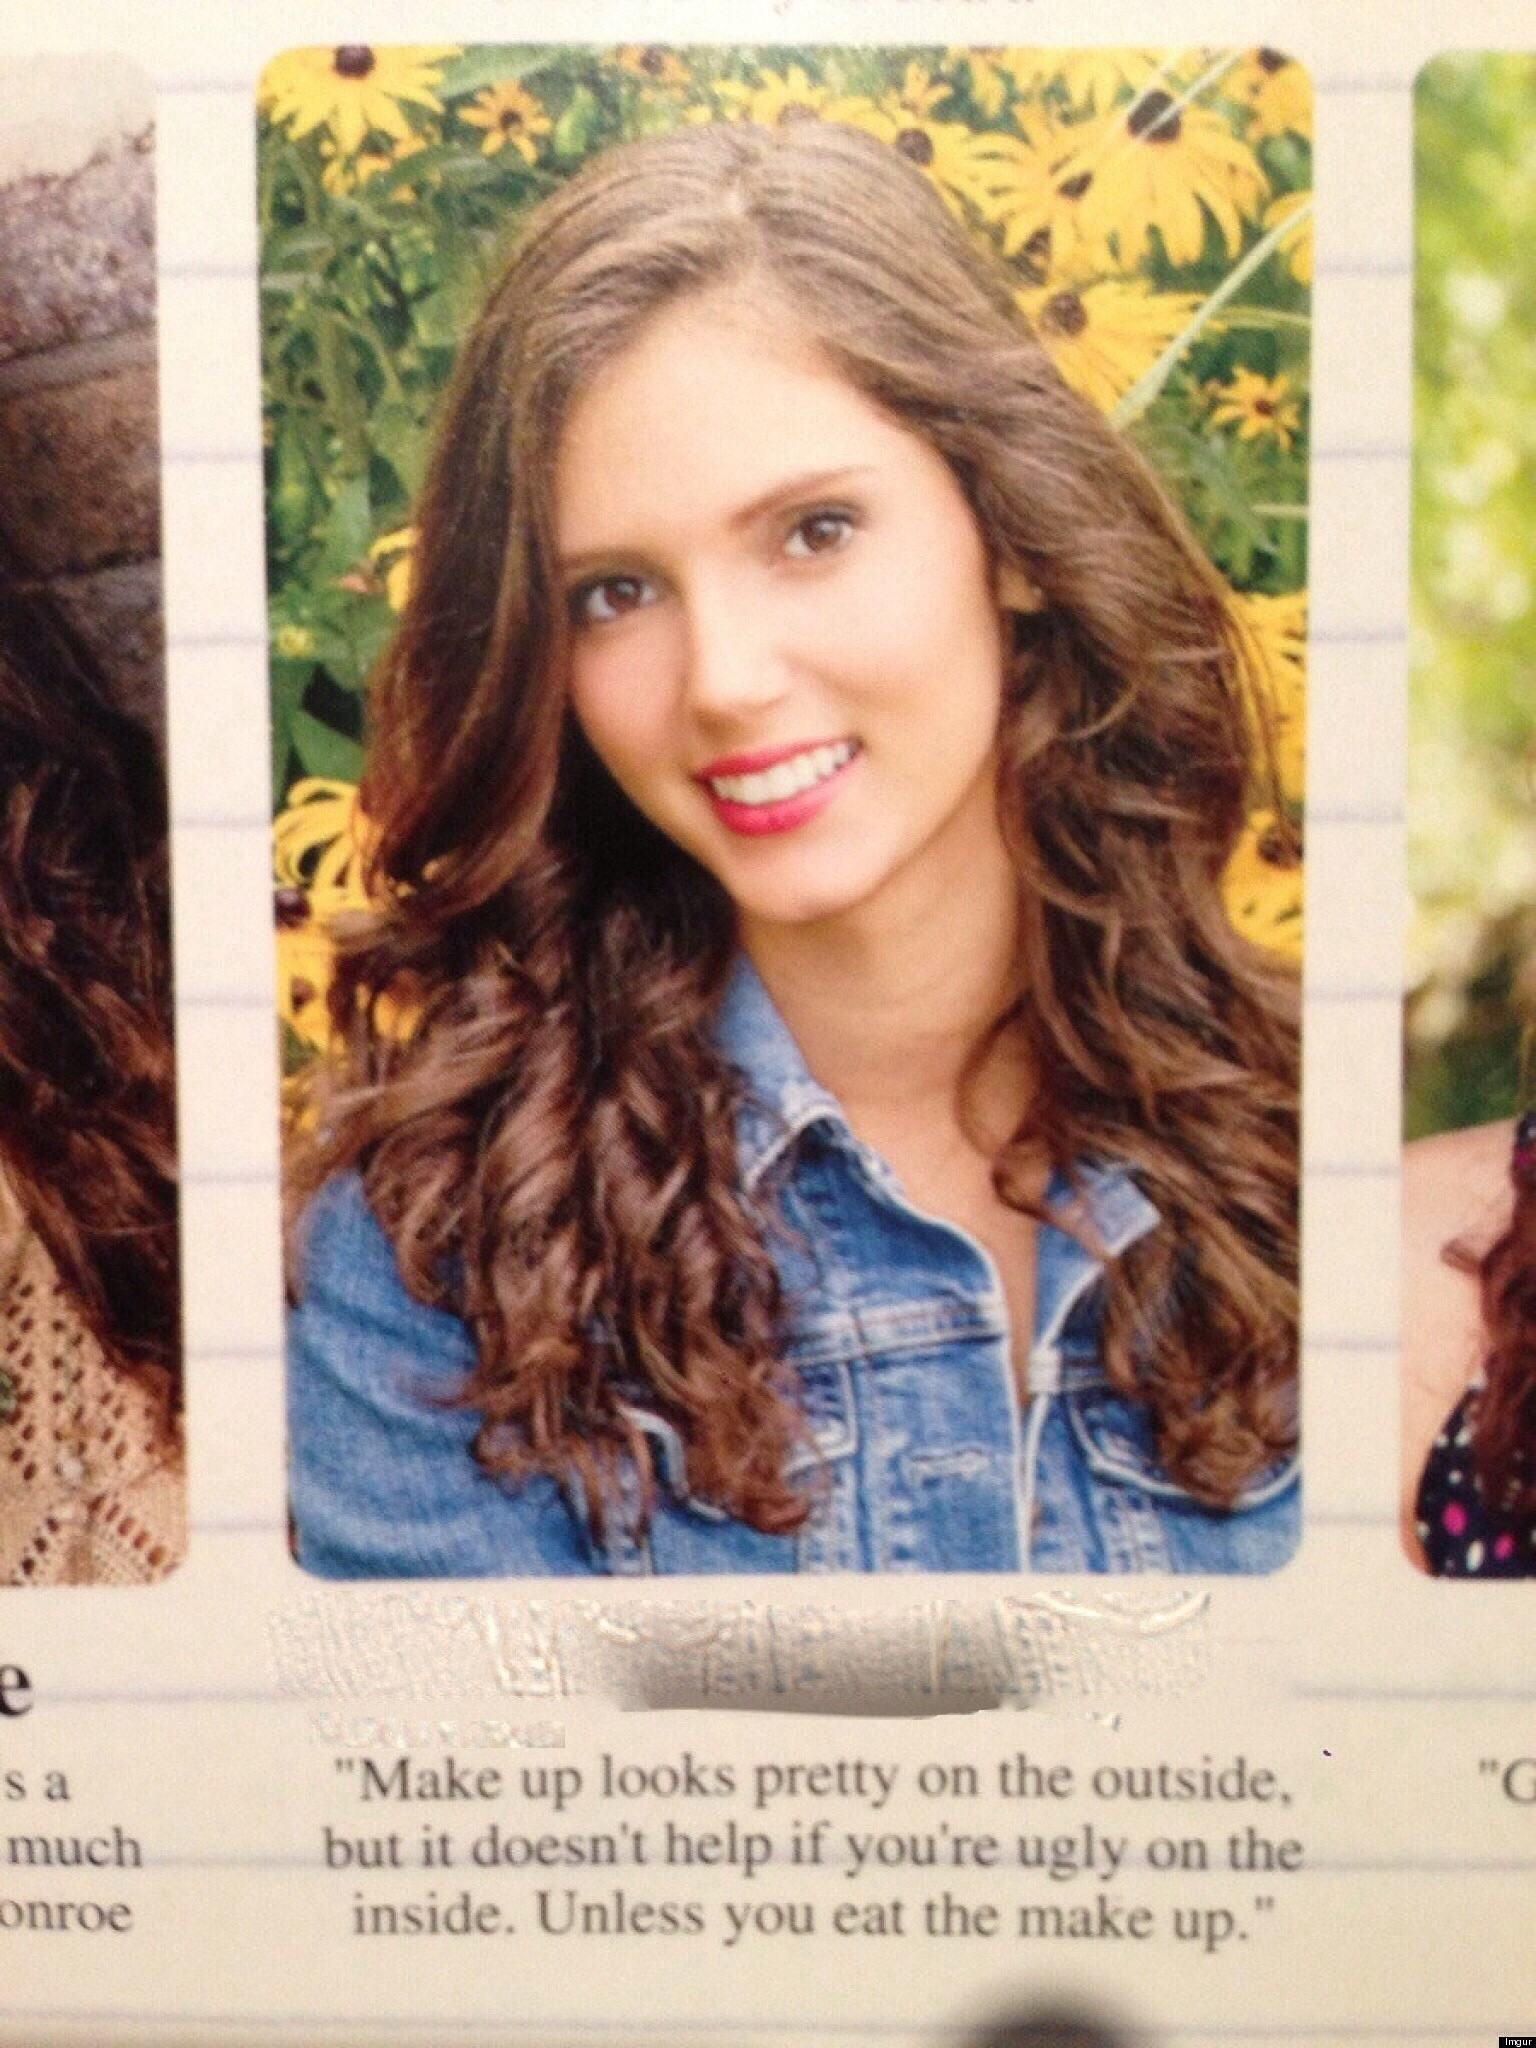 Funny Yearbook Picture Quotes CollegeTimescom - The 28 funniest yearbook quotes of all time